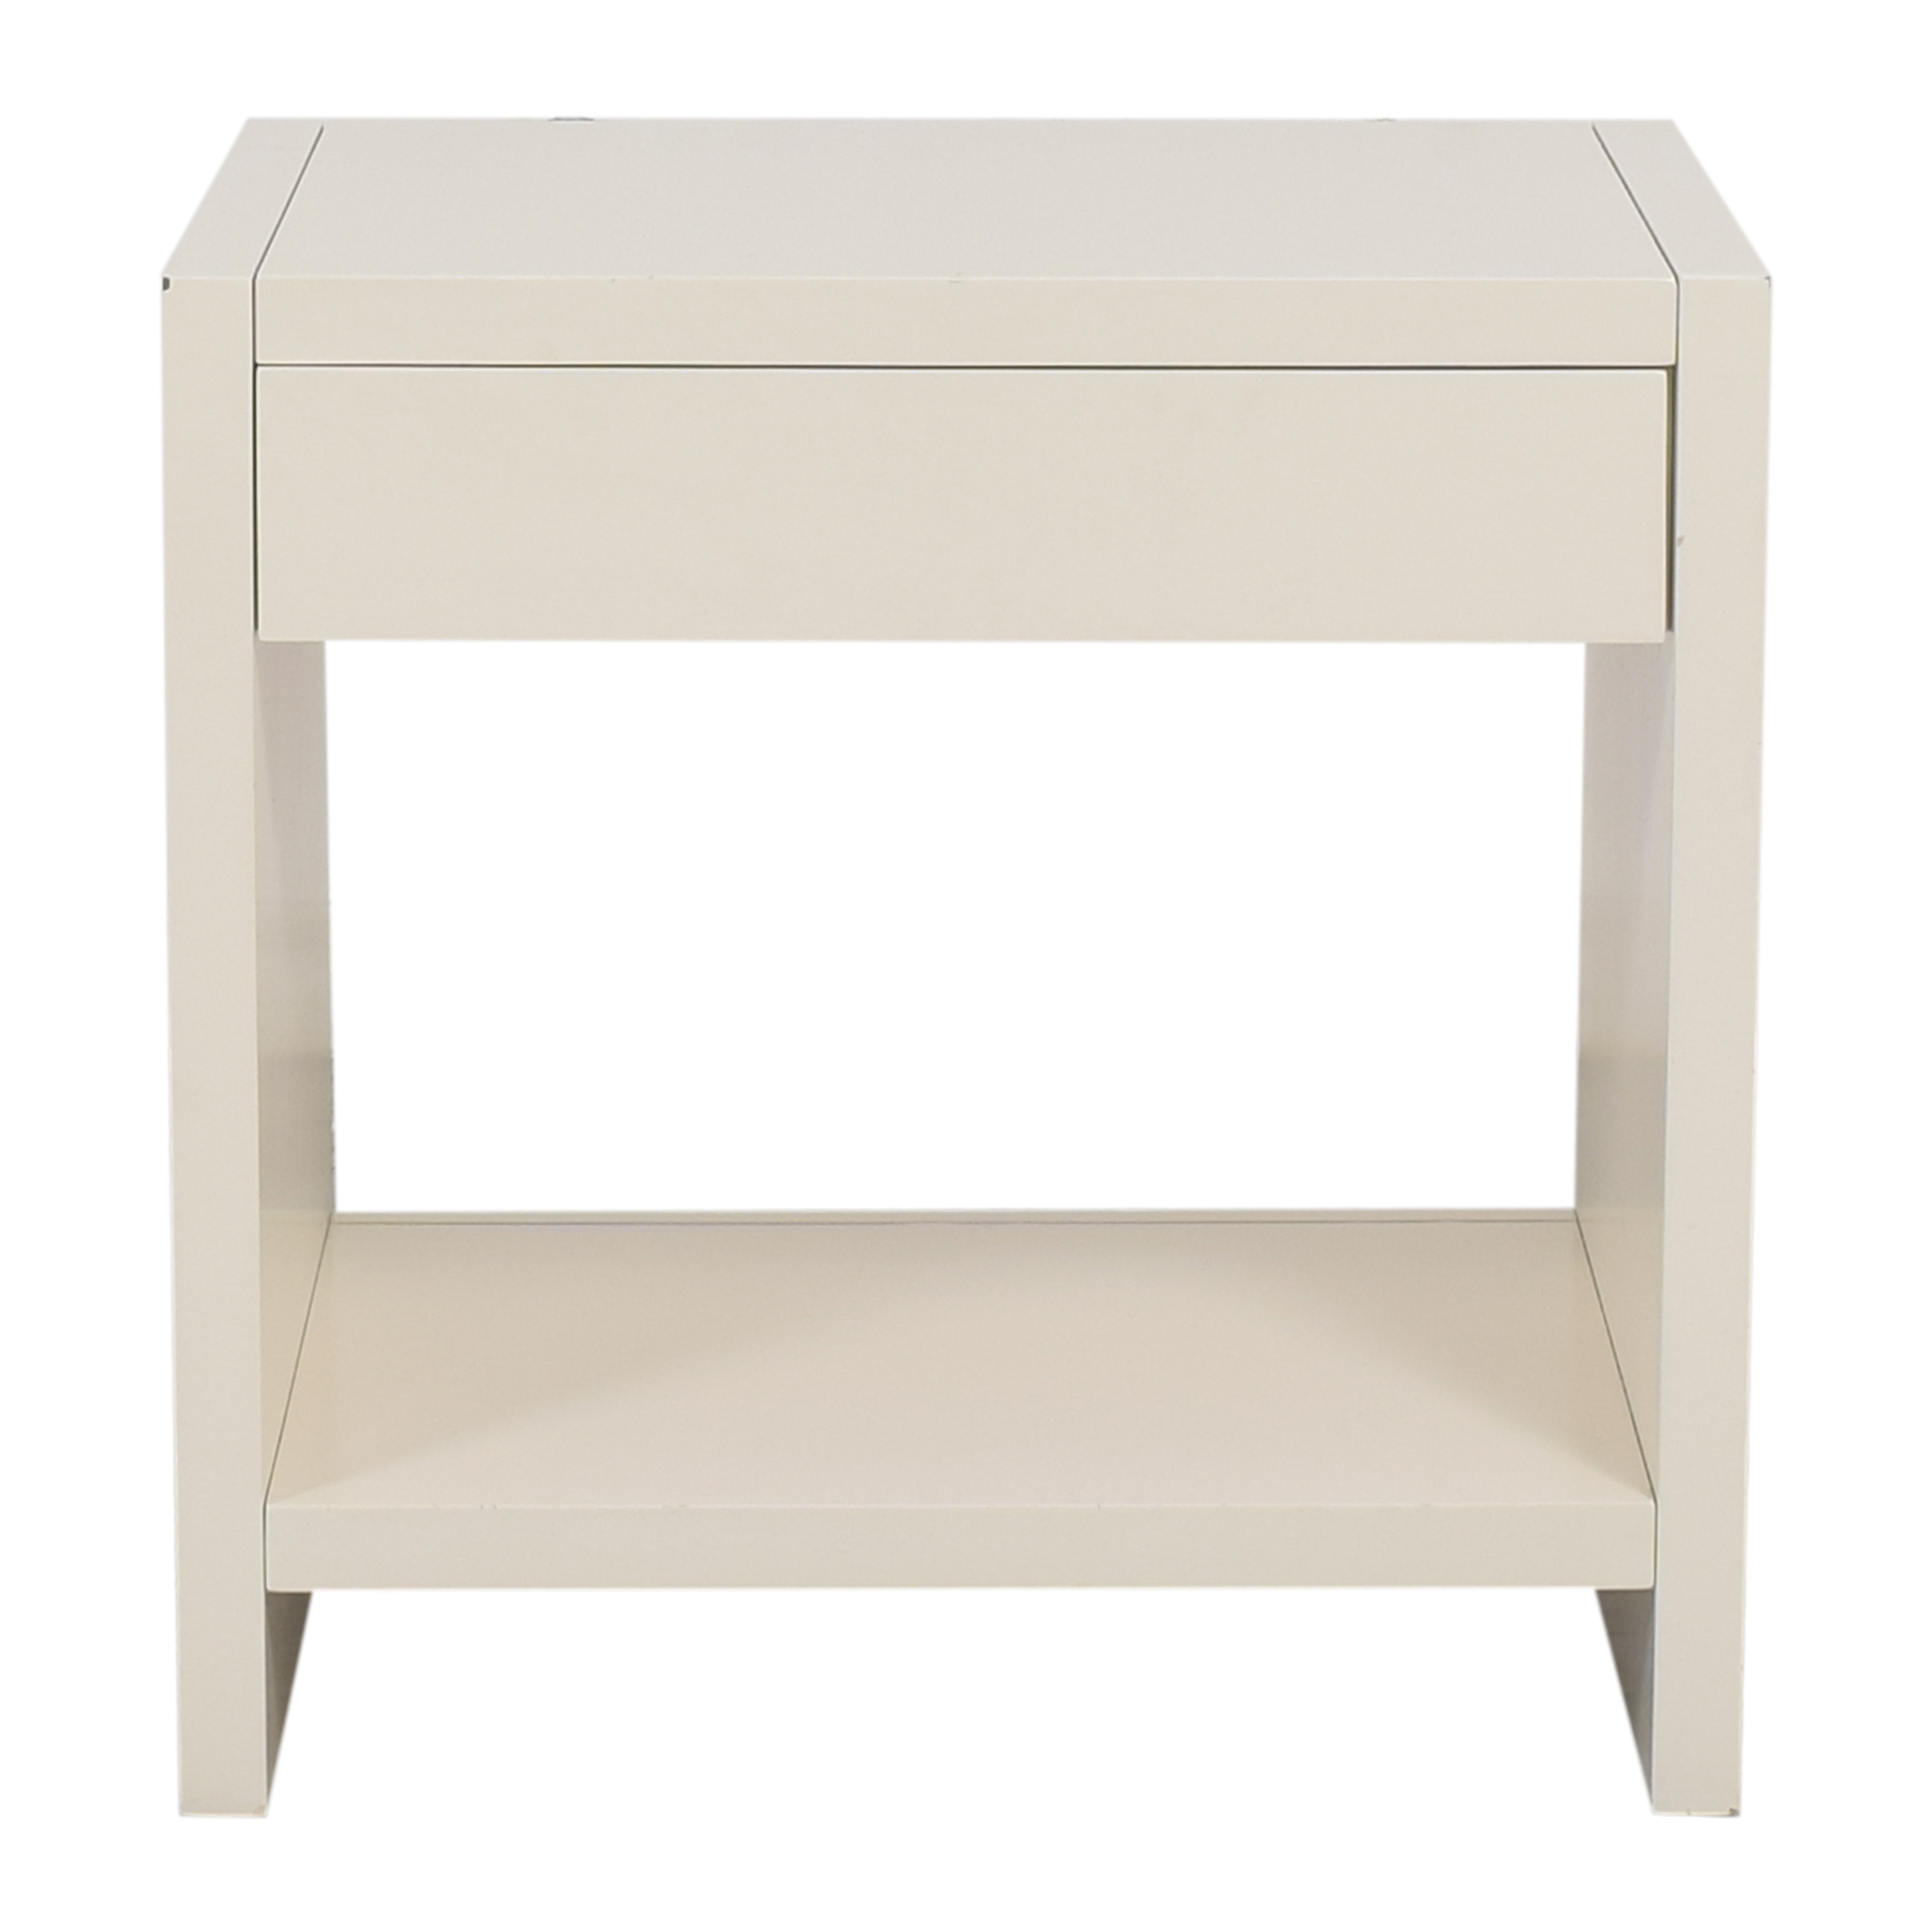 Pottery Barn Pottery Barn Alden Nightstand for sale